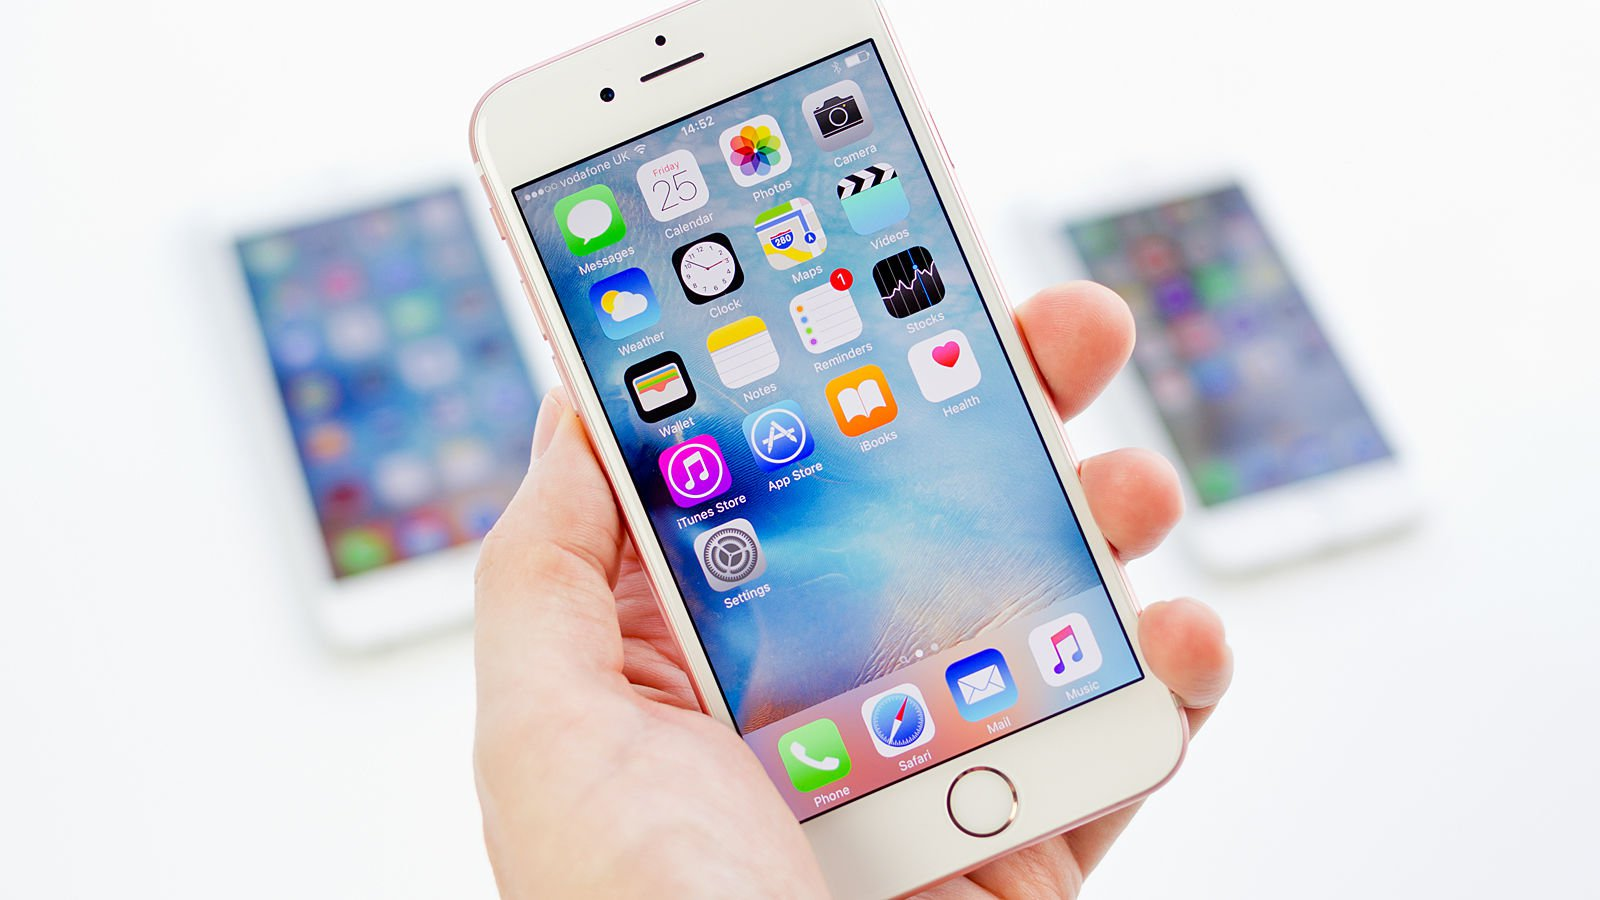 Apple promised to solve the problem with the battery of the iPhone 6s and 6s Plus